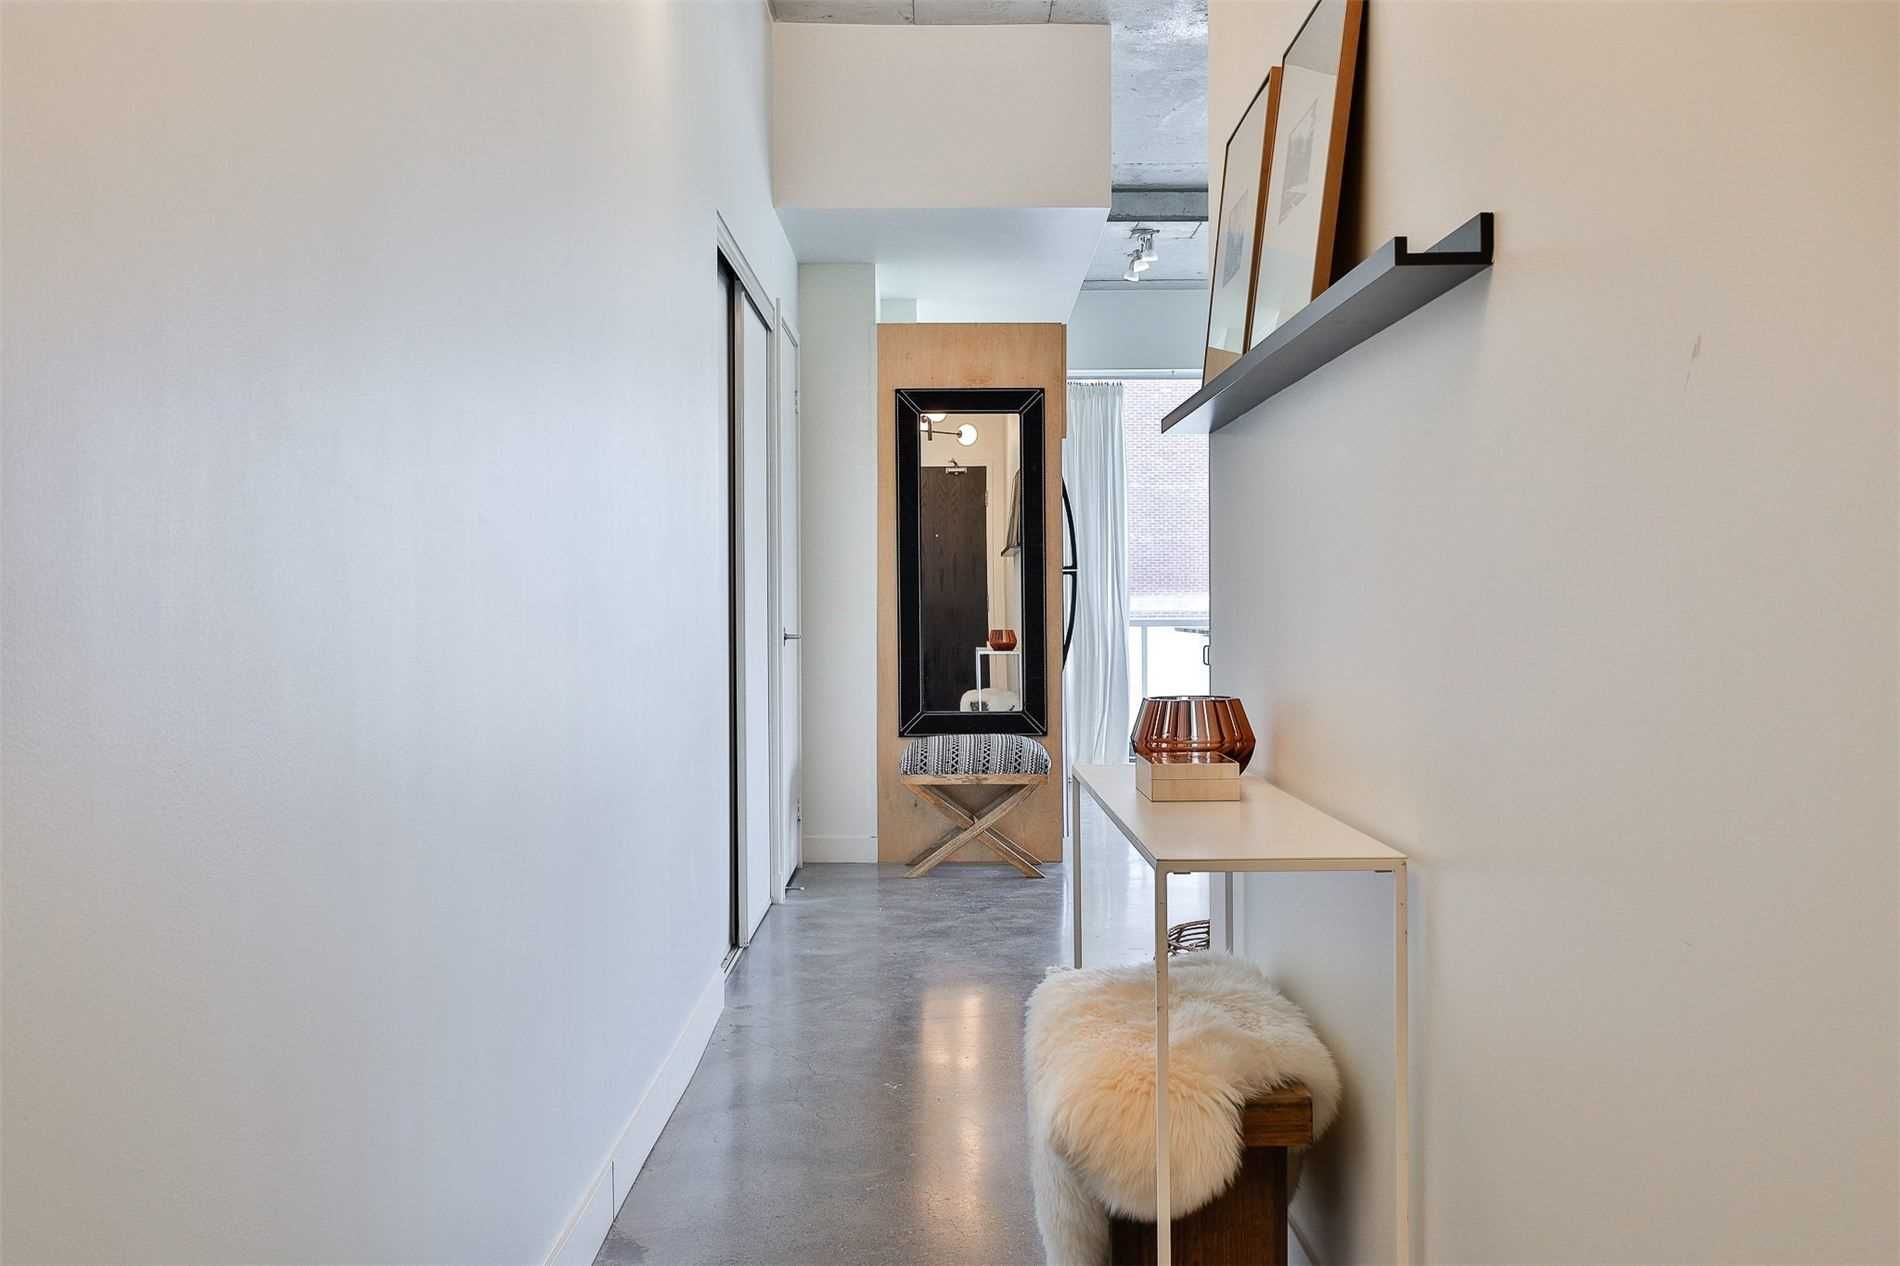 201 Carlaw Ave, unit 504 for sale in Toronto - image #2